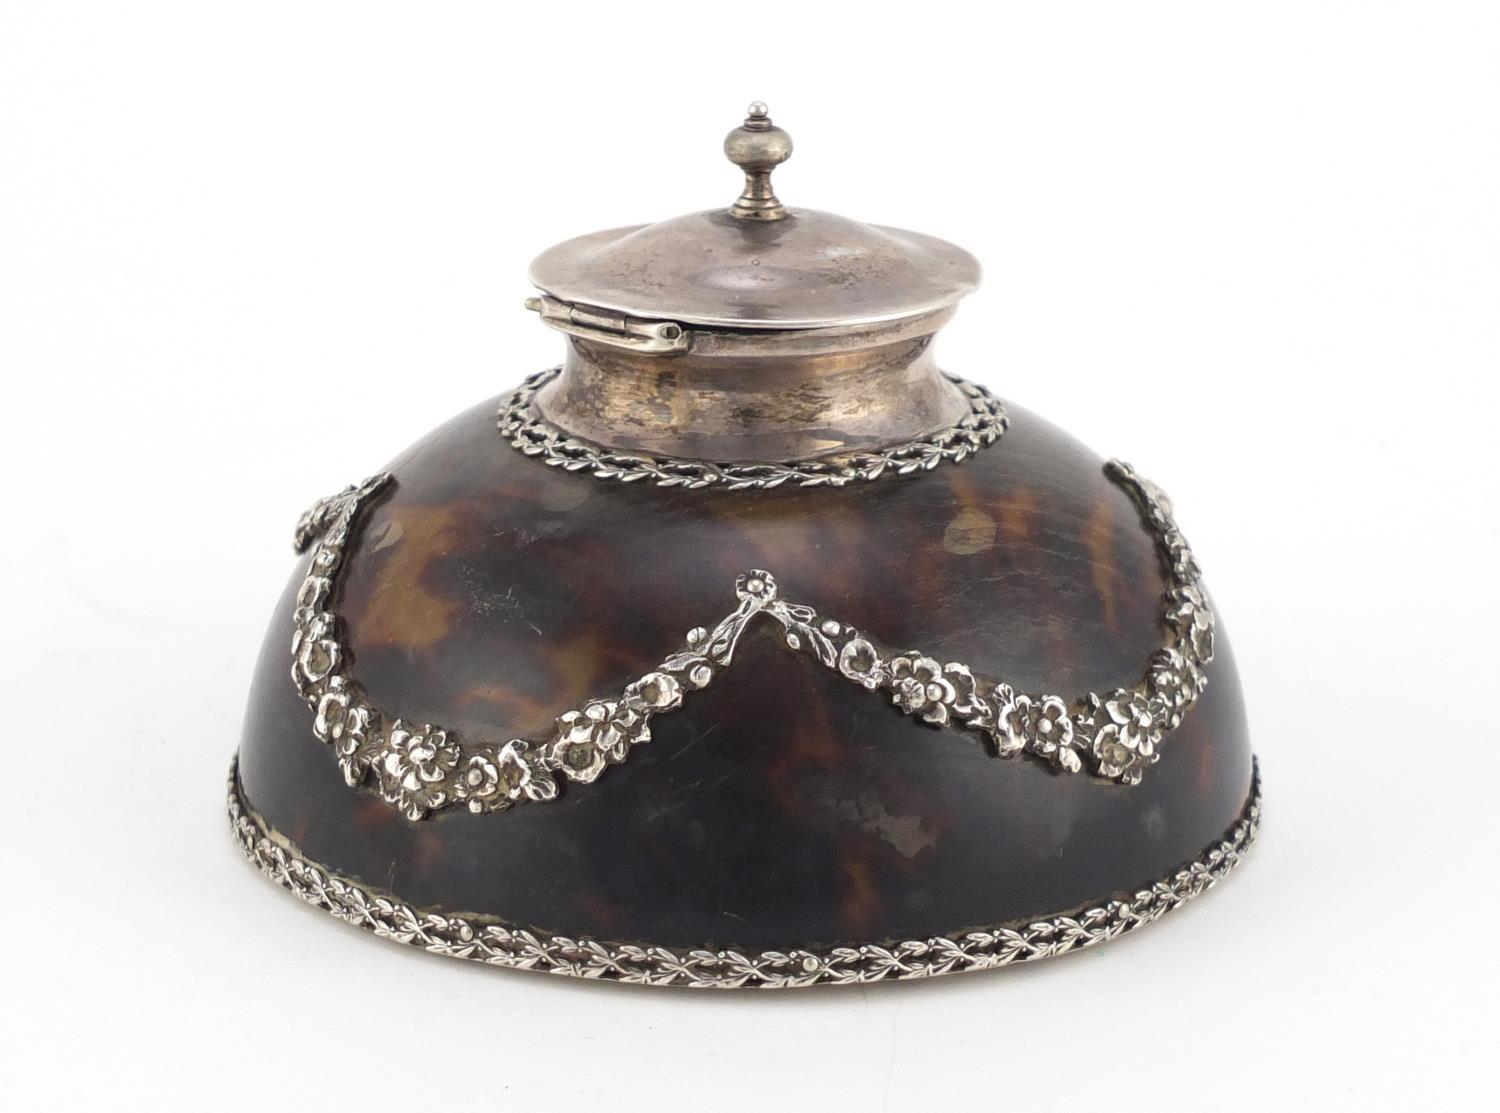 Lot 54 - Edwardian tortoiseshell and cut glass inkwell with silver mounts by Apsrey & Co, decorated in relief